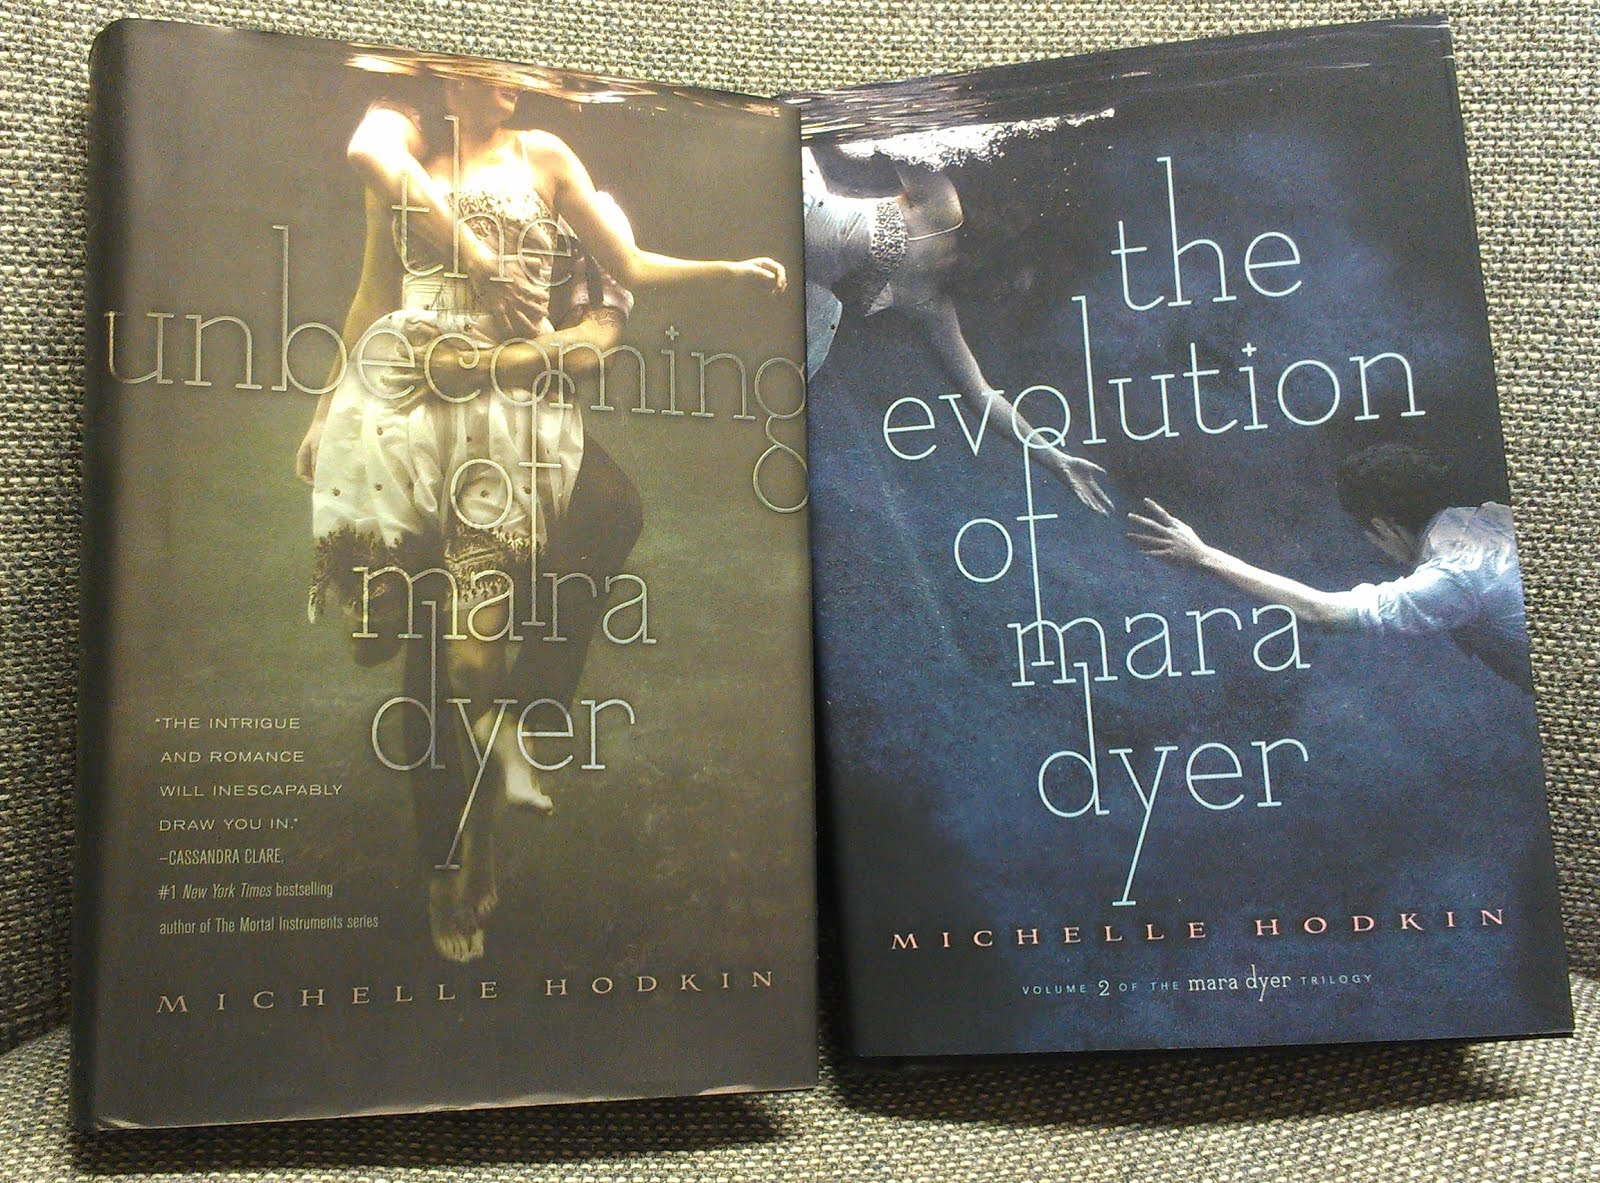 The Unbecoming Of Mara Dyermichelle Hodkin The Evolution Of Mara Dyermichelle  Hodkin